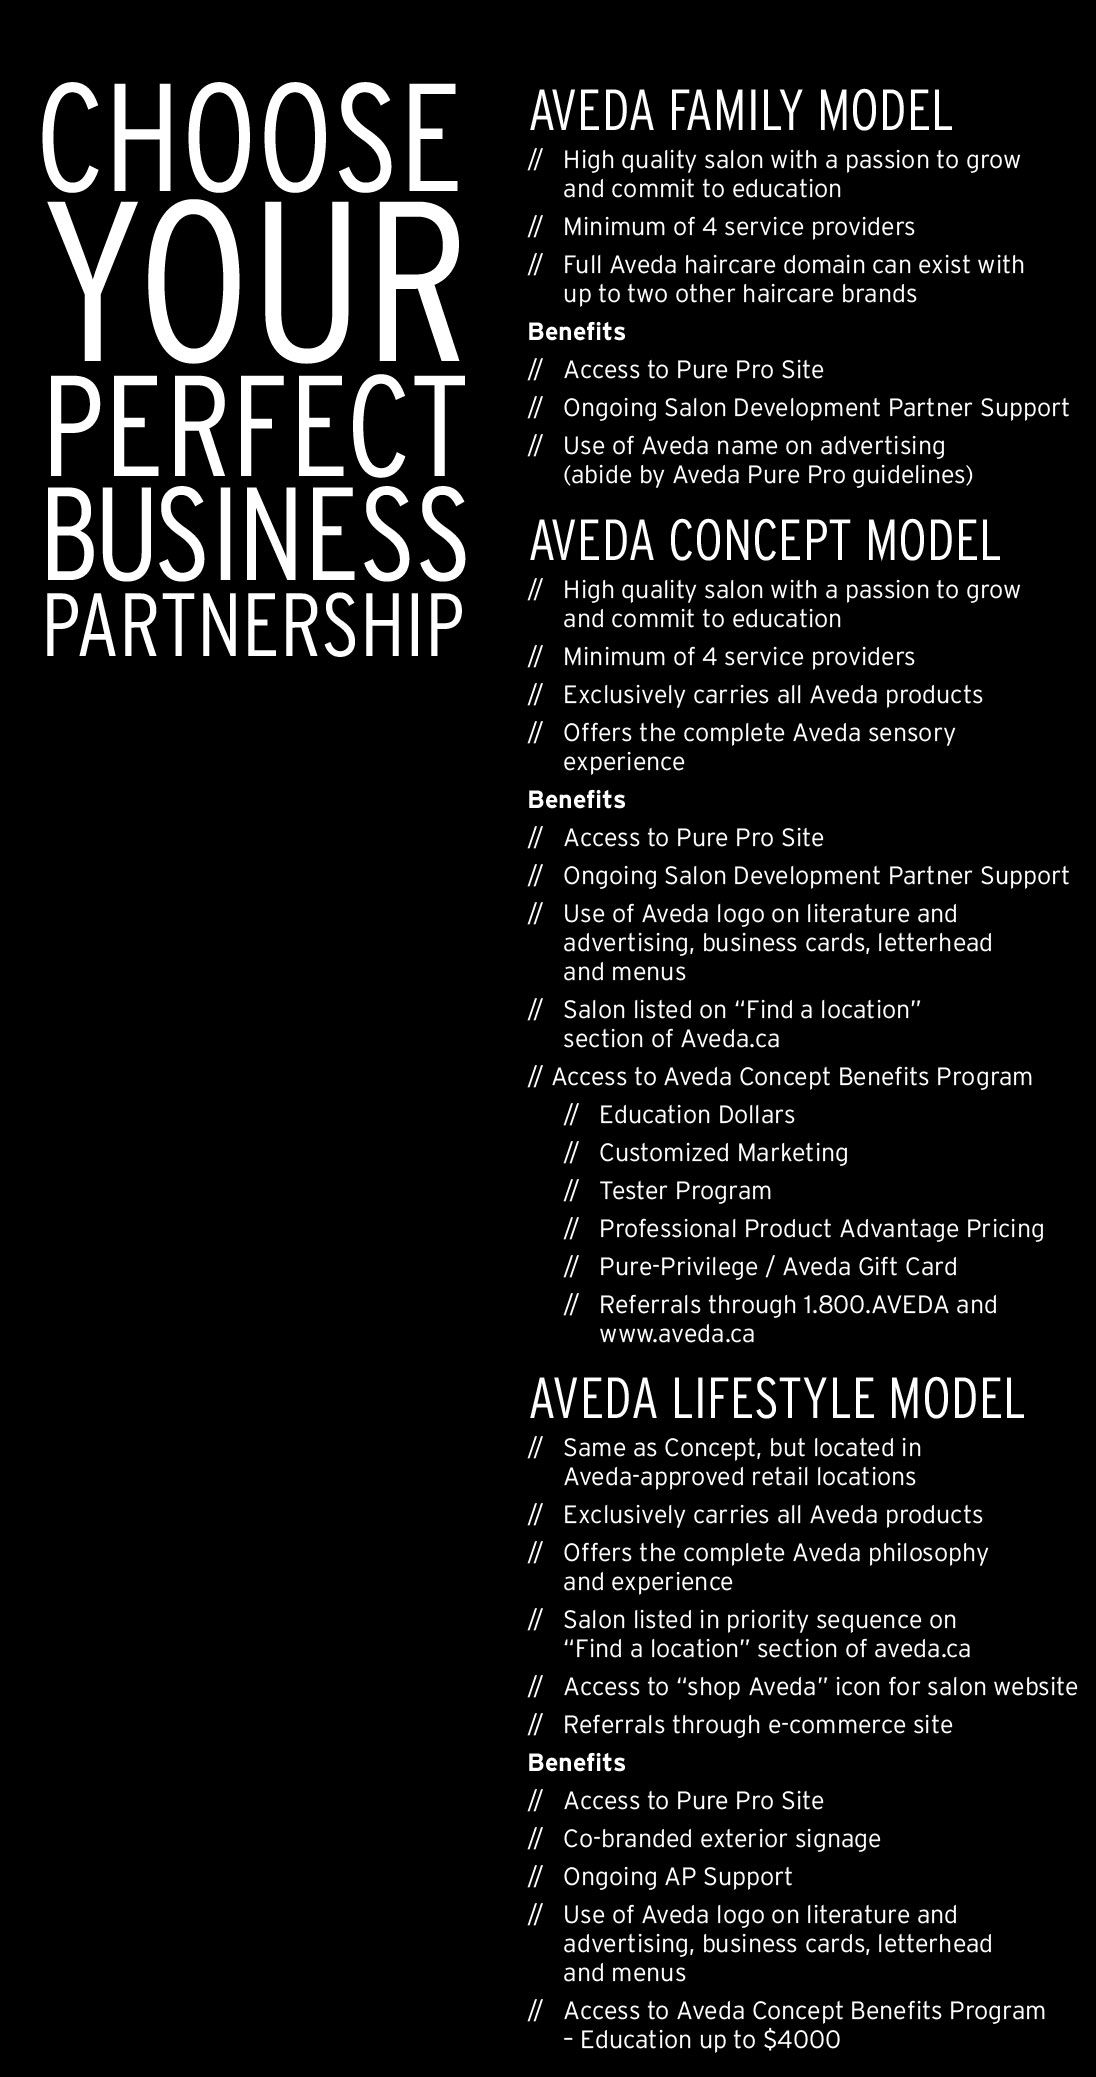 WHY PARTNER WITH AVEDA — Become an Aveda Salon